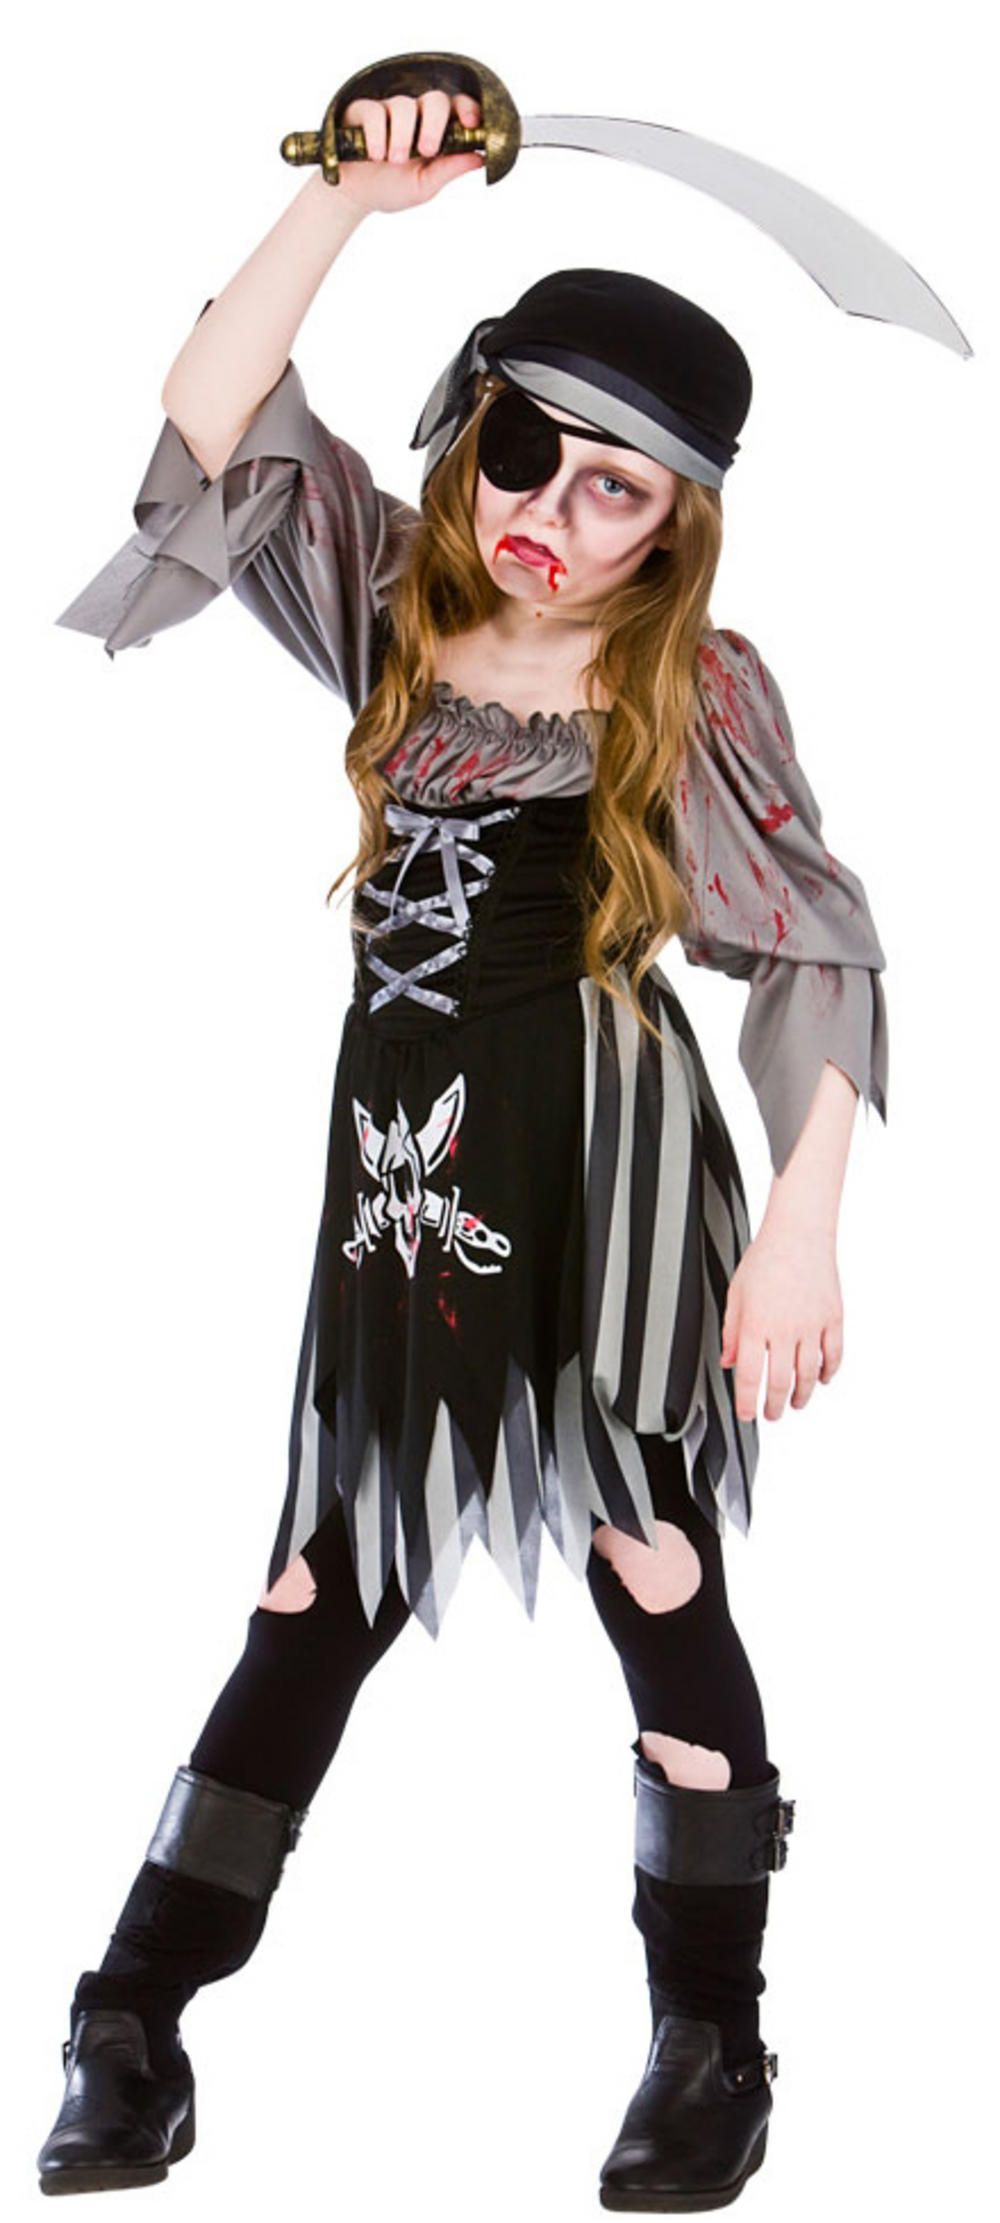 Halloween Zombie Costumes For Girls.Girls Zombie Ghost Pirate Costume